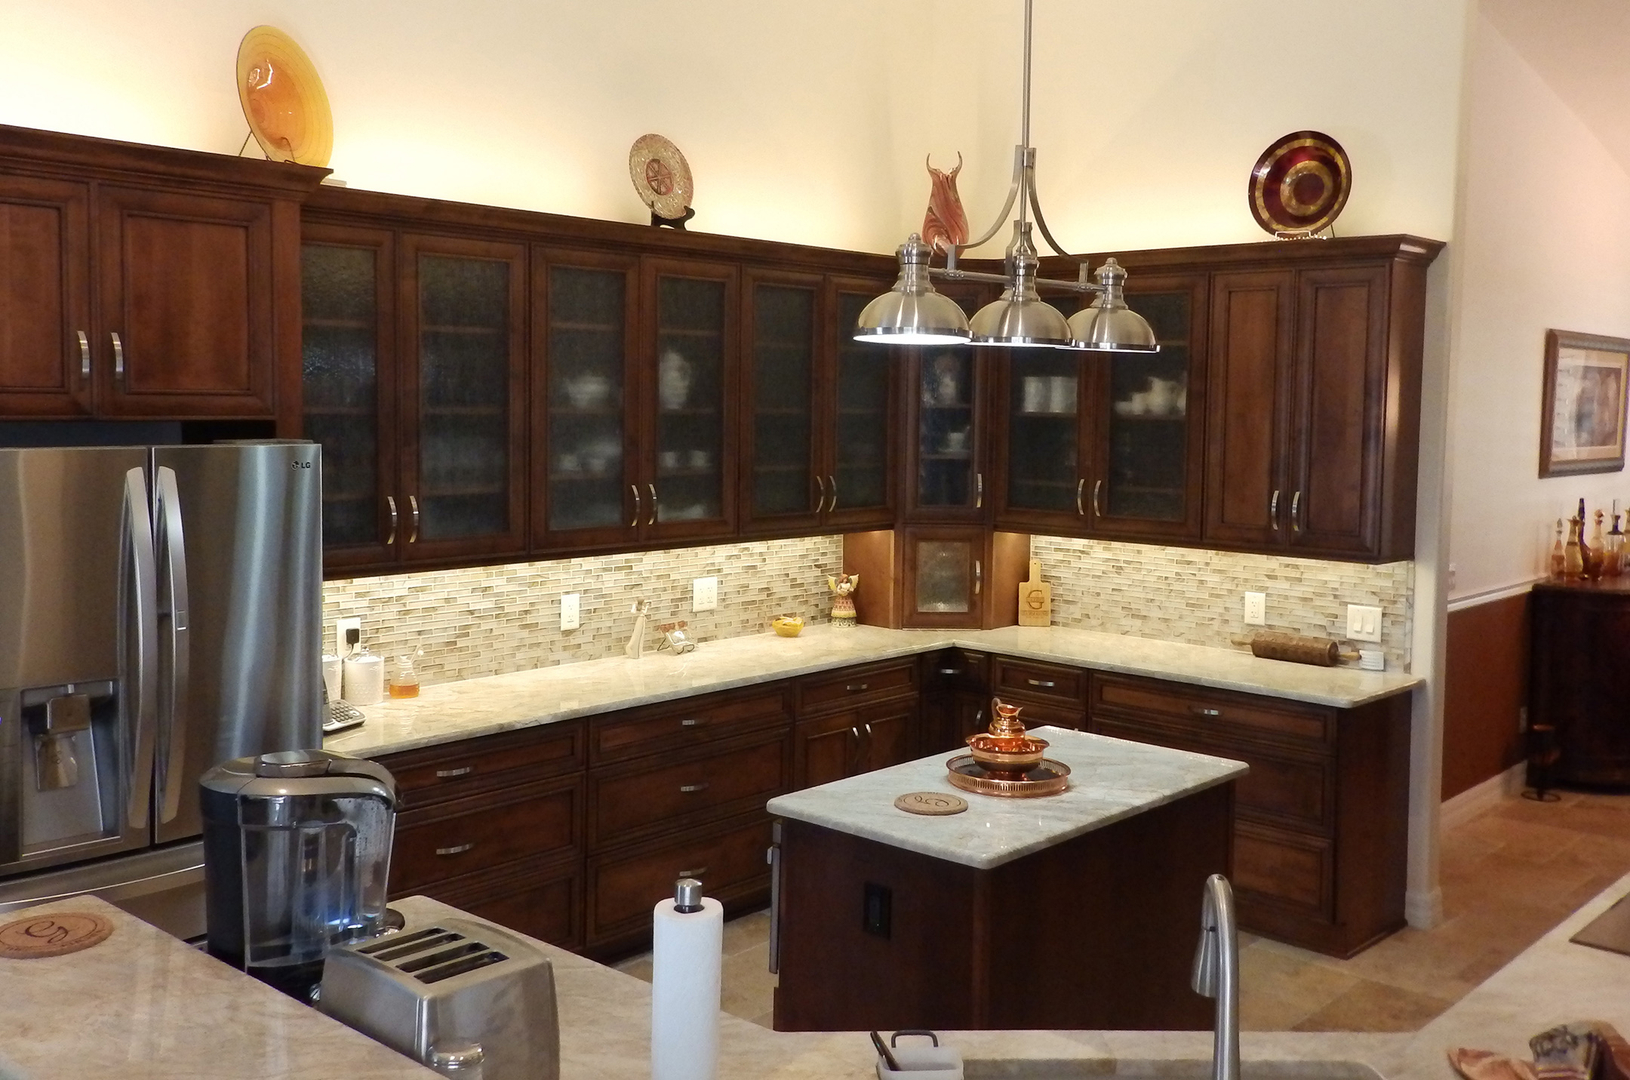 Kitchen Remodeling Jacksonville Fl Exterior Classy Universal Design Solutions  Home Review